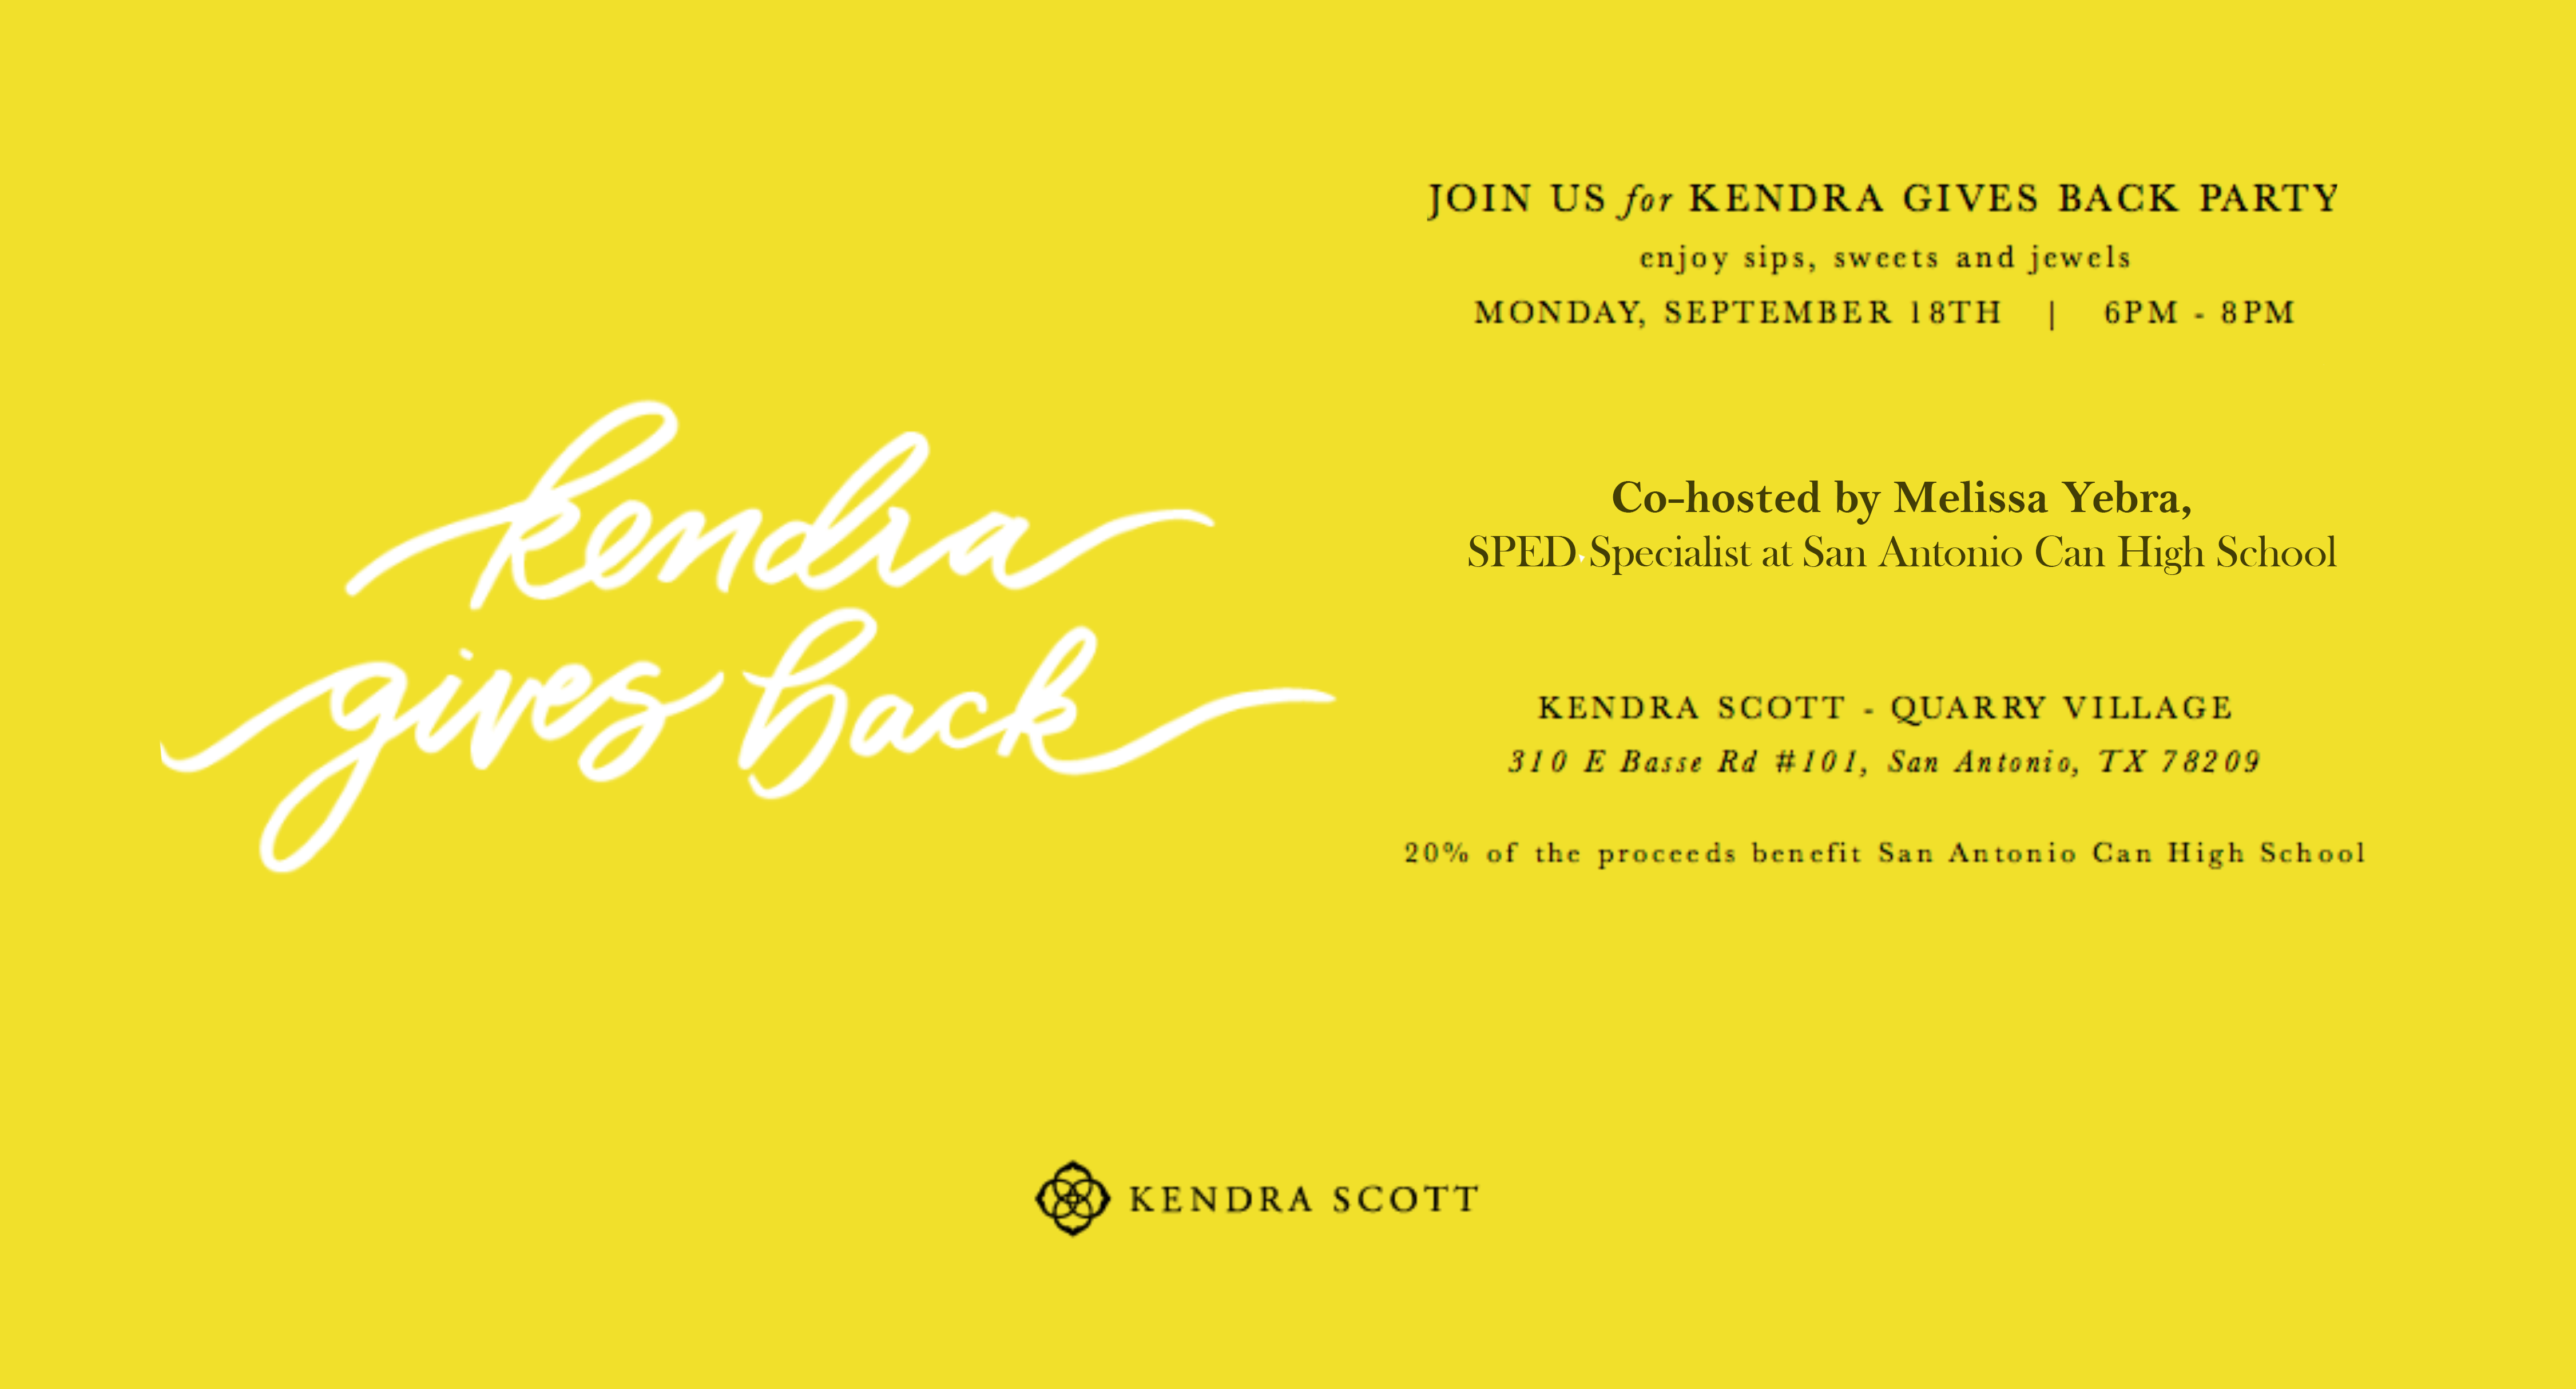 Kendra Scott Gives Back to San Antonio Can High School